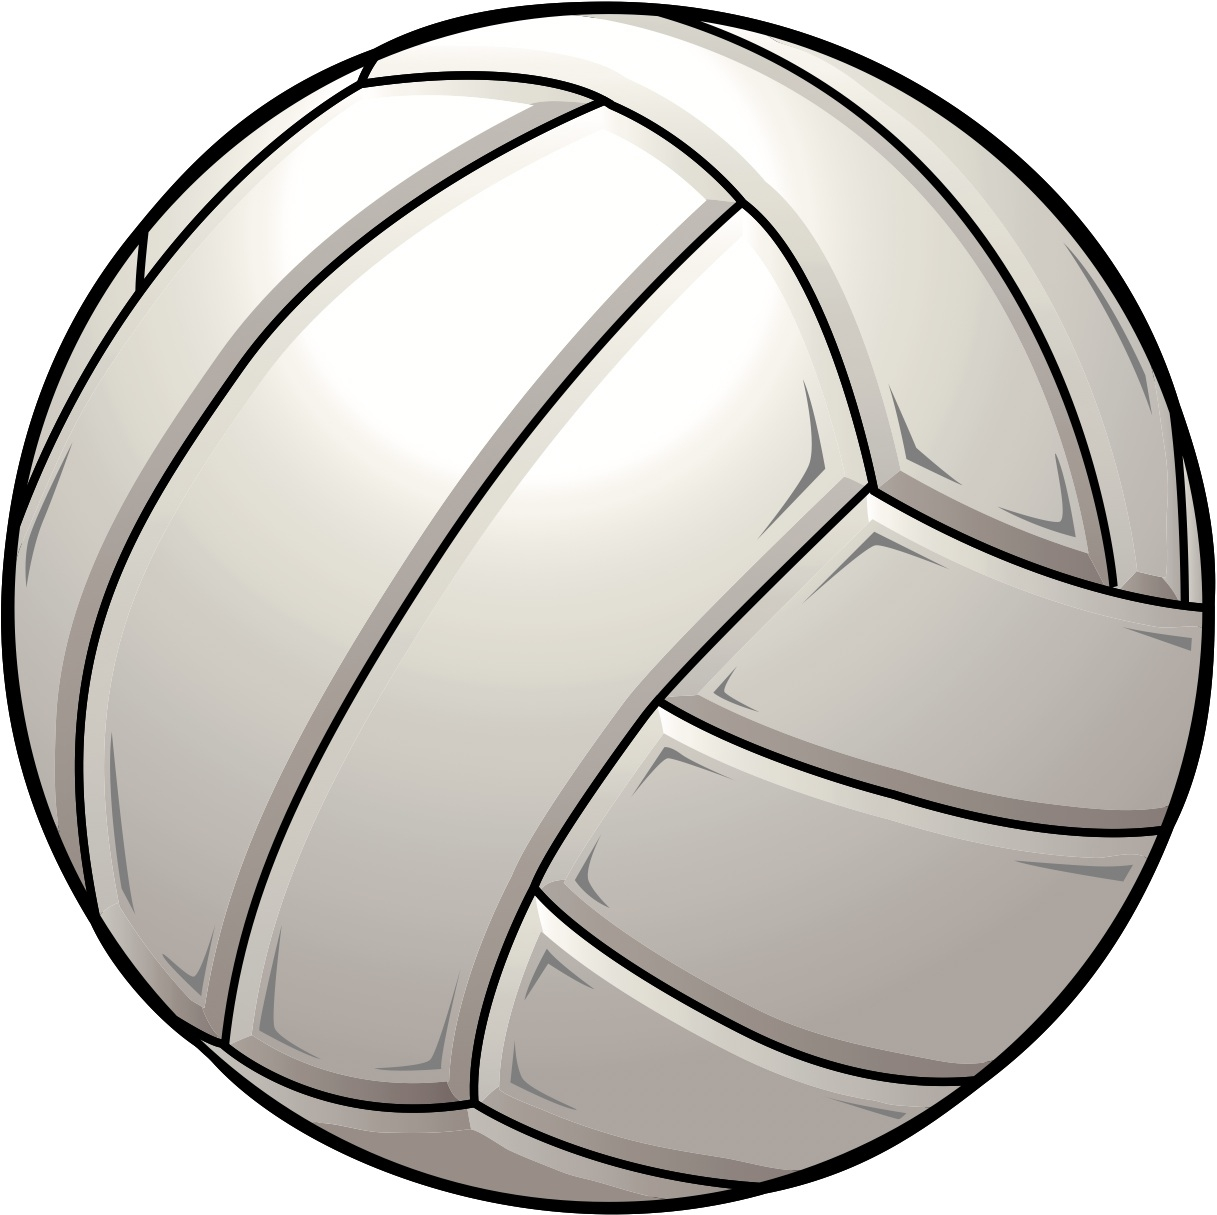 Volleyball clipart. Unique collection digital coloring